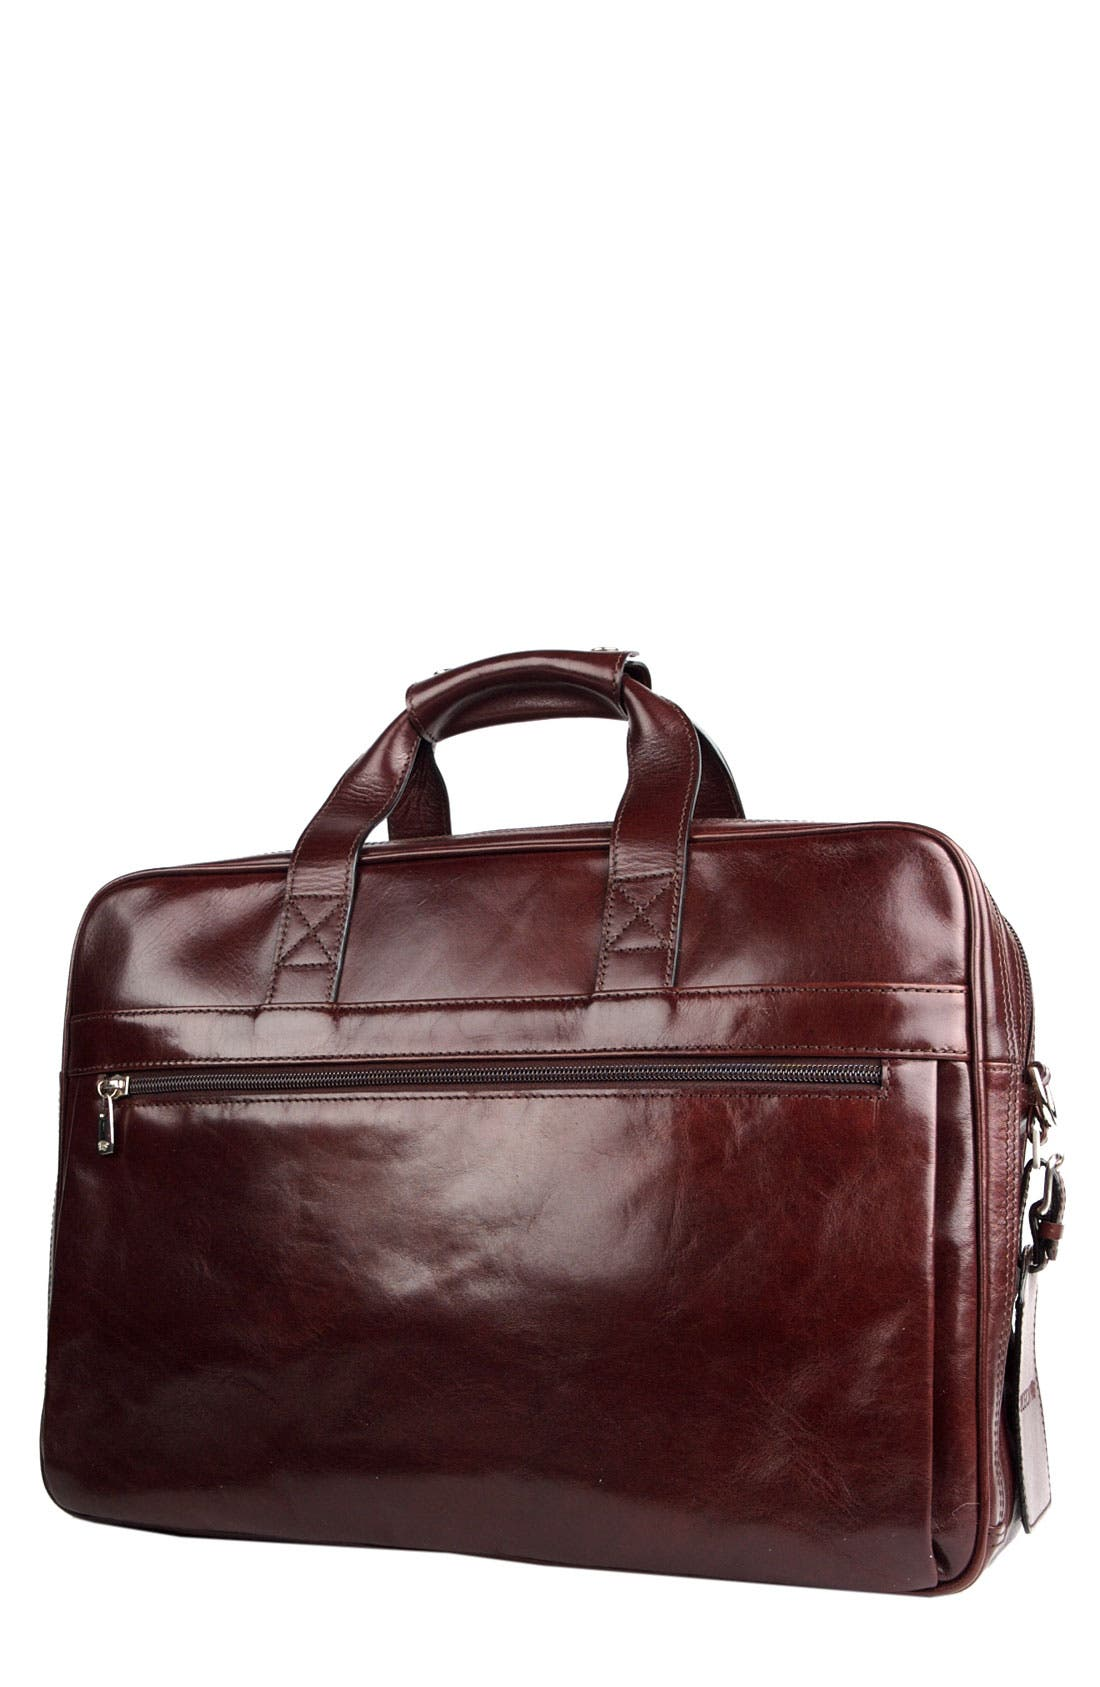 Double Compartment Leather Briefcase,                             Main thumbnail 1, color,                             DARK BROWN